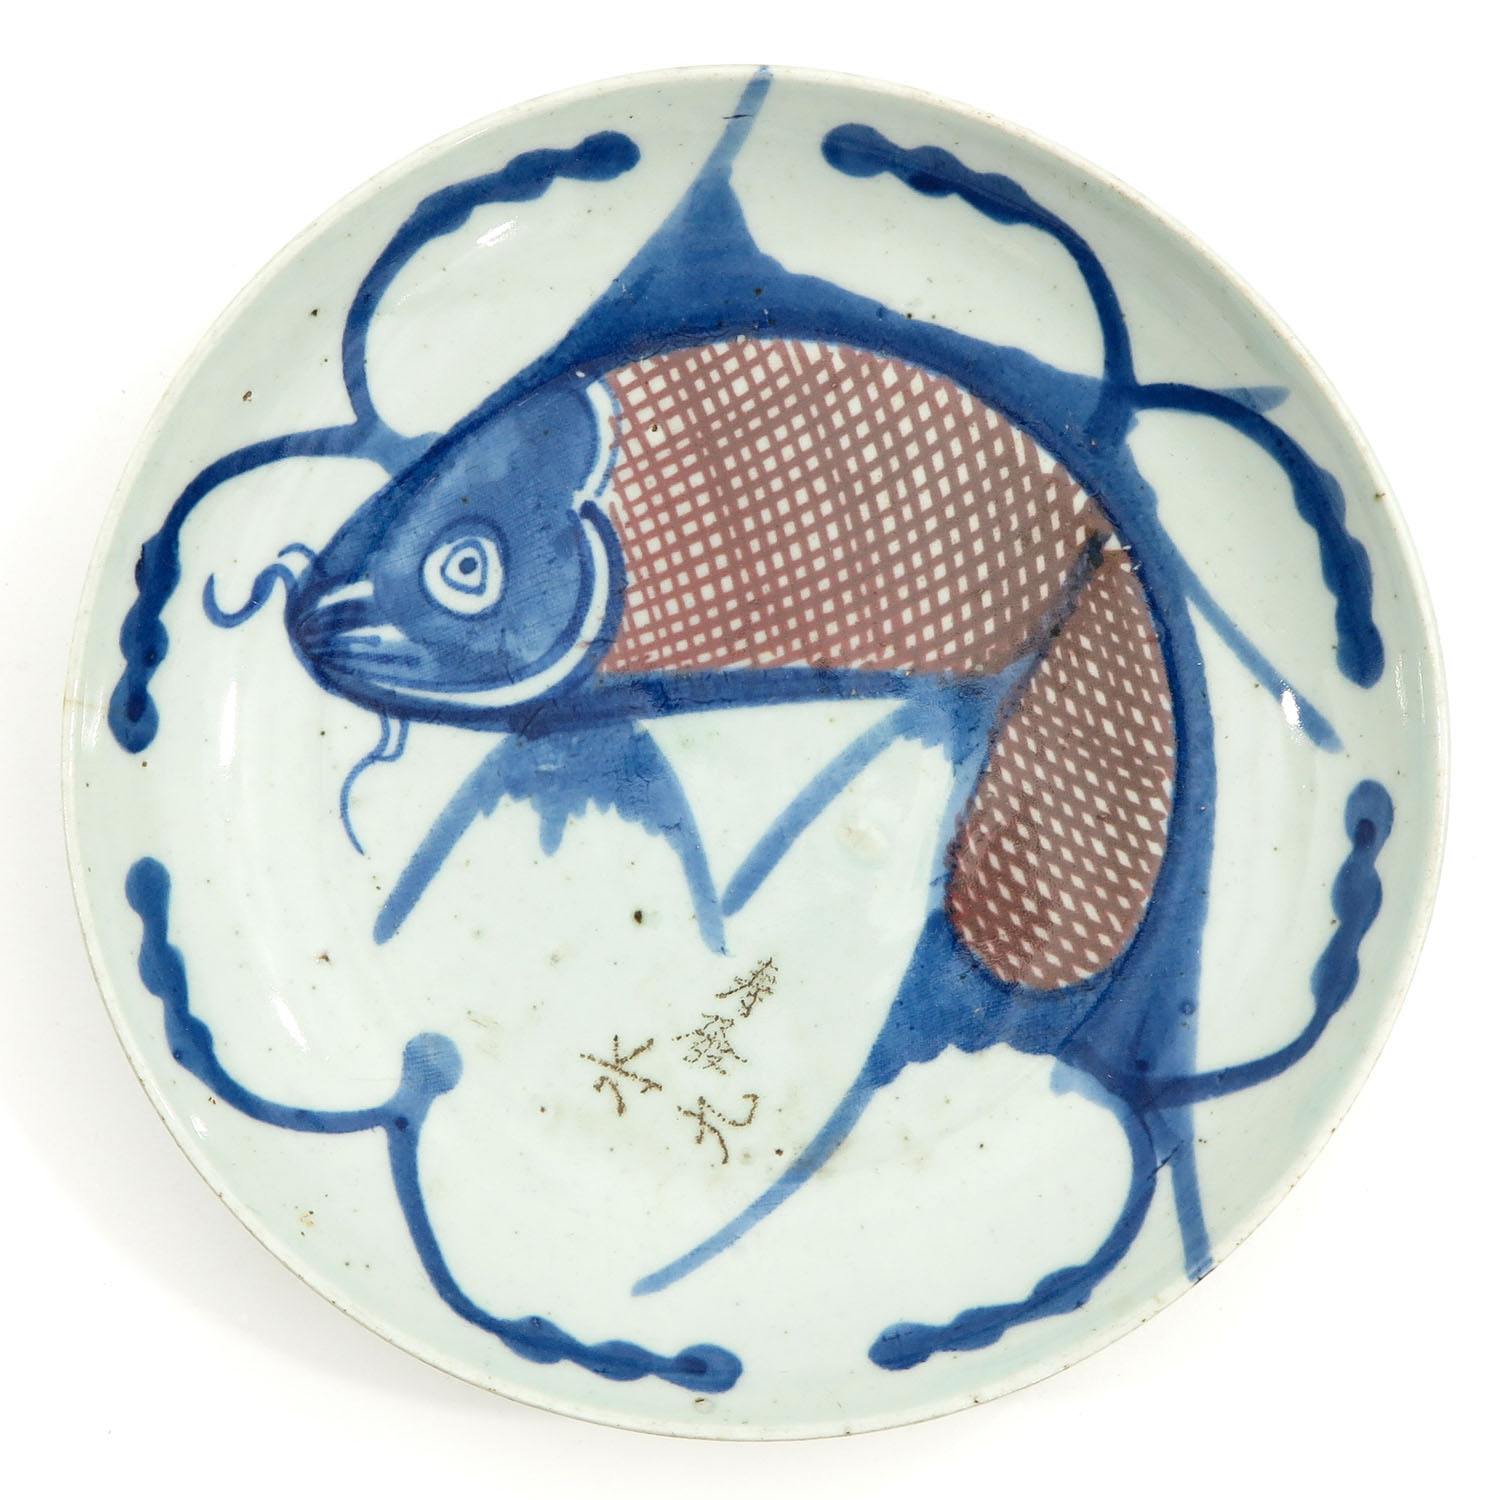 A Collection of 3 Stoneware Plates - Image 5 of 10